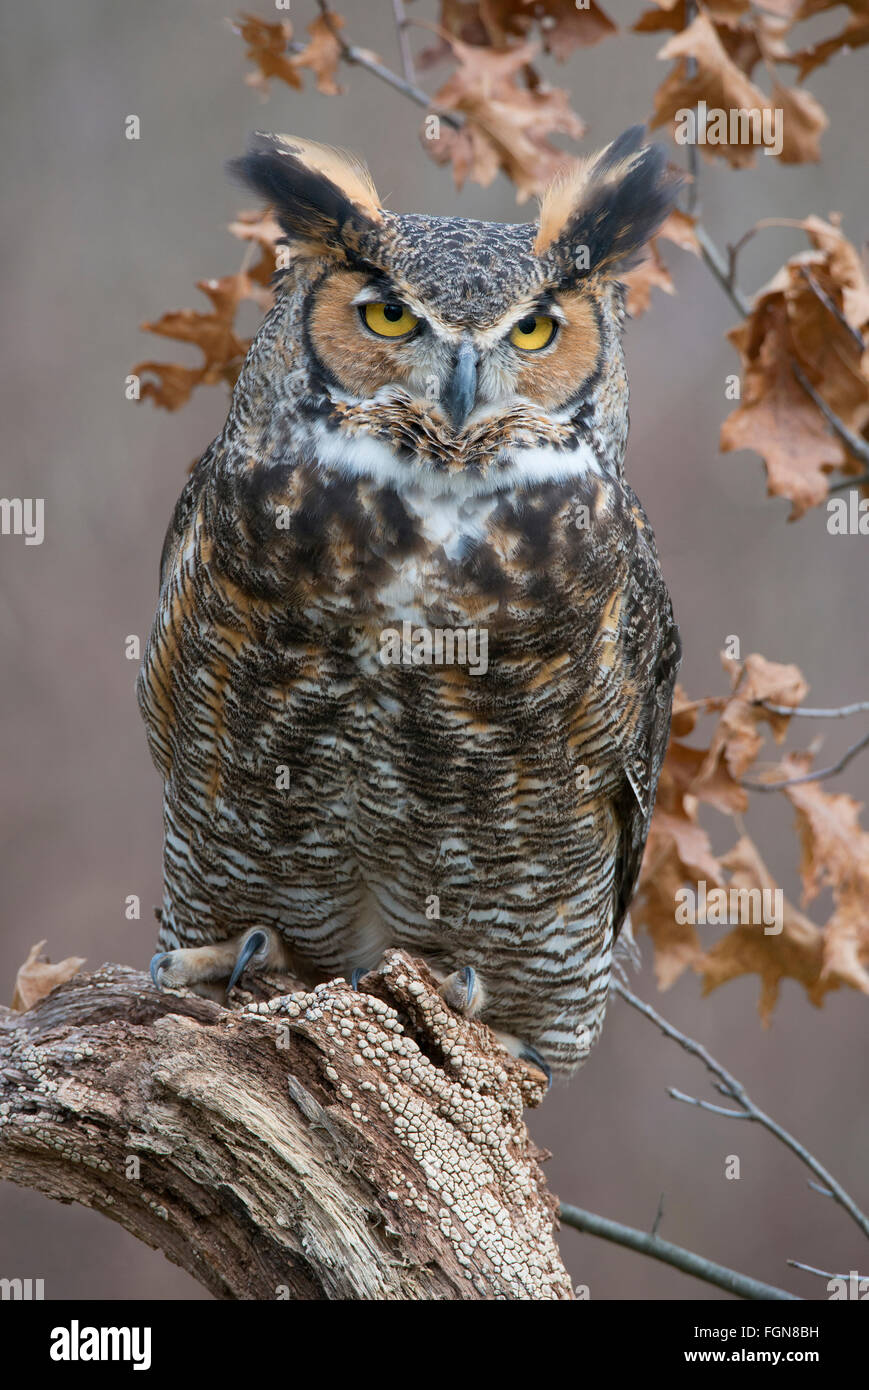 Great Horned Owl Bubo virginianus perched on tree stump, Eastern North America - Stock Image